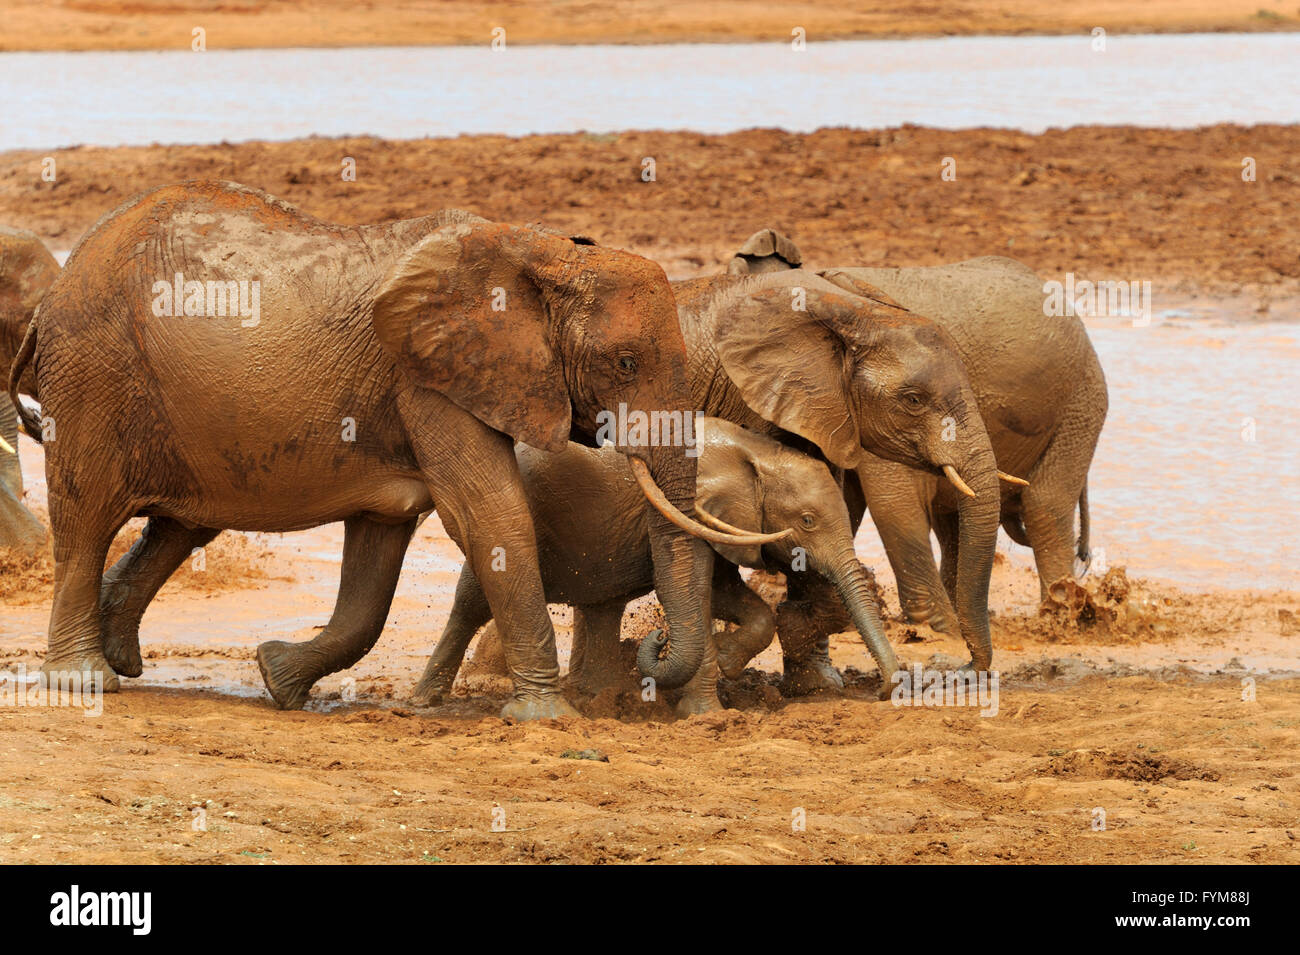 Elephant in National park of Kenya, Africa Stock Photo